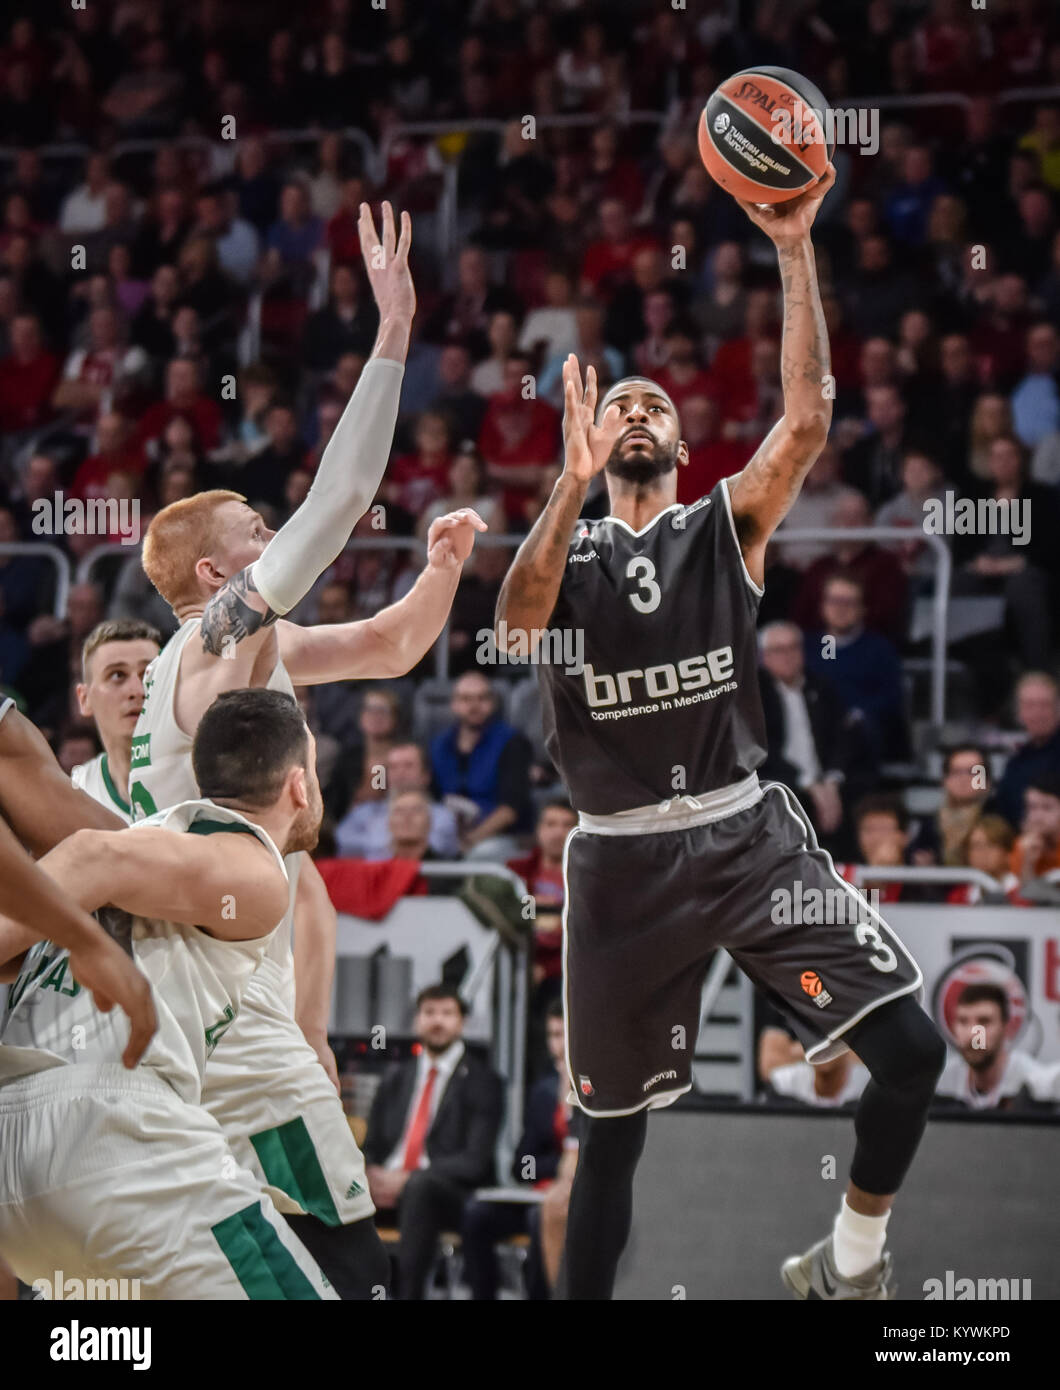 Bamberg, Germany. 16th Jan, 2018. Germany, Bamberg, Brose Arena, 16.01.2018, Basketball - Euroleague - Round 18 Stock Photo